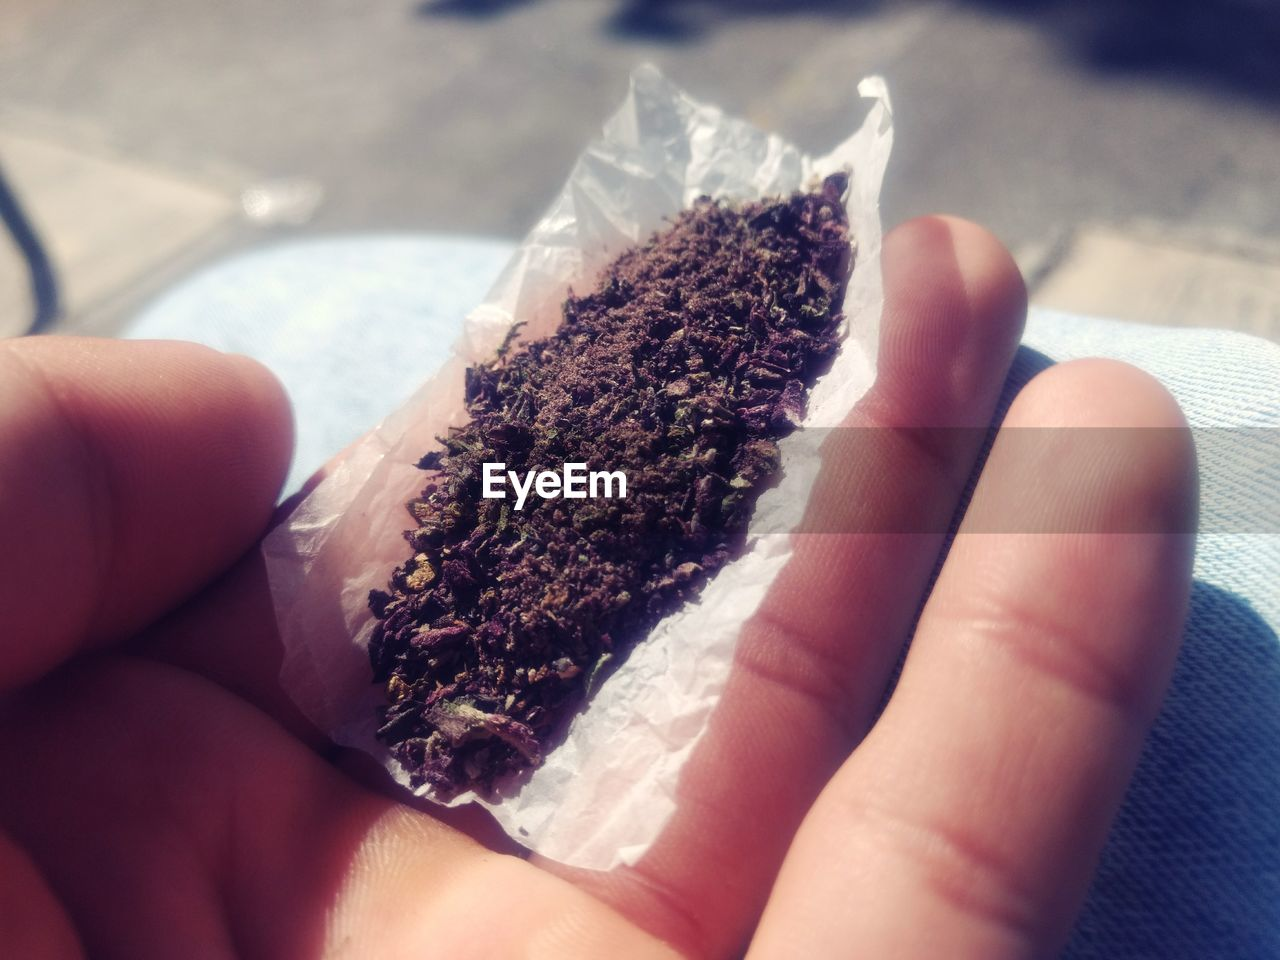 human hand, human body part, one person, human finger, real people, holding, unrecognizable person, lifestyles, close-up, bad habit, focus on foreground, addiction, women, indoors, marijuana - herbal cannabis, food, day, people